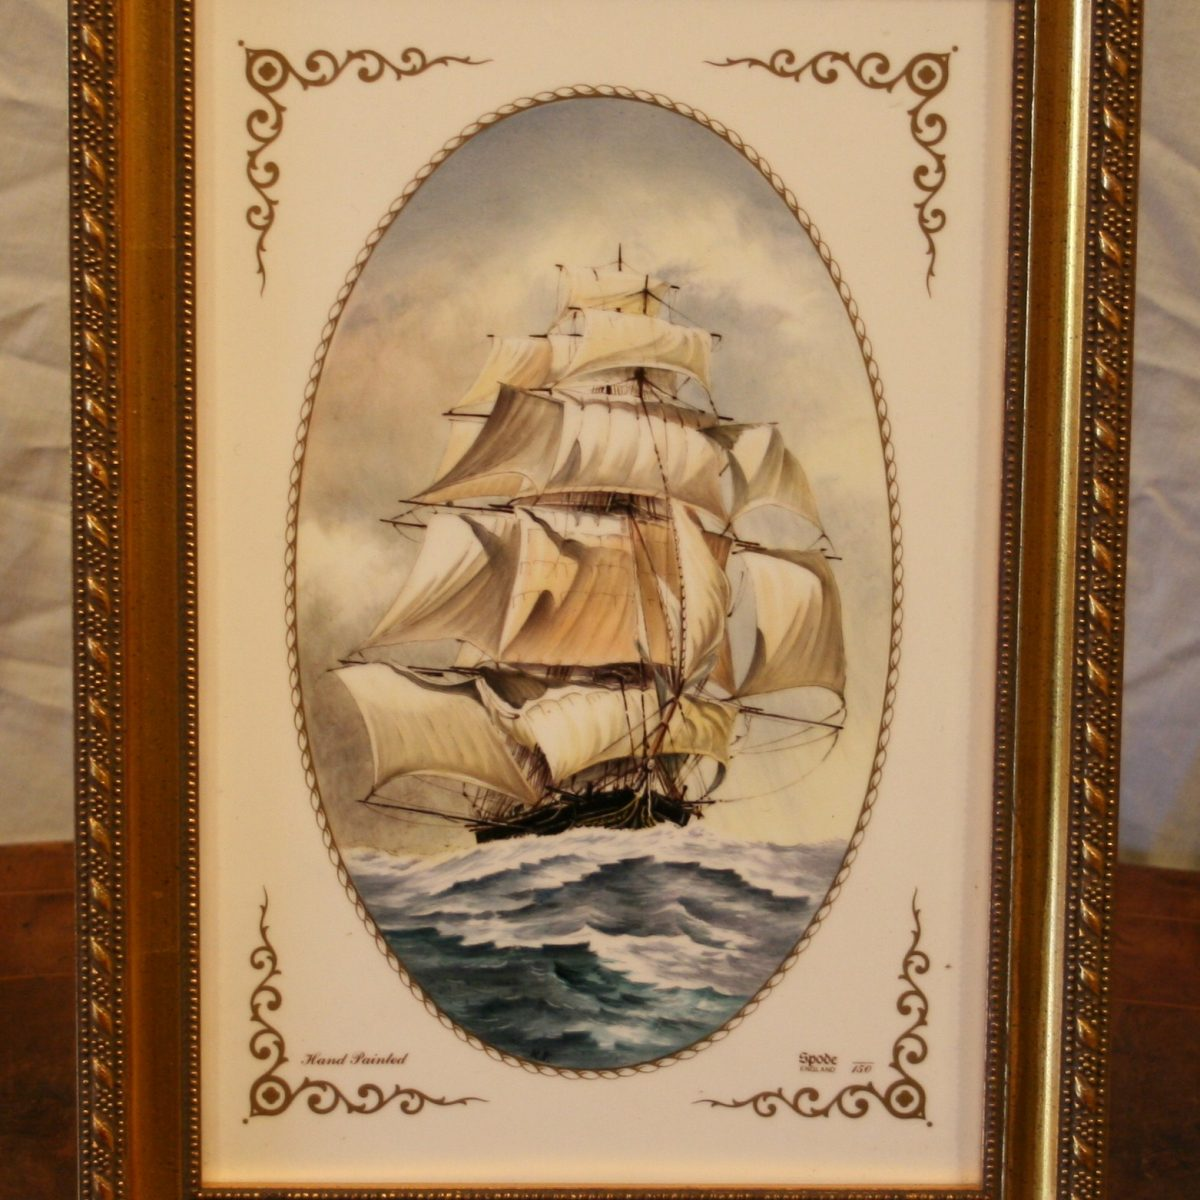 Spode tile with a hand painted picture of a tall sailing ship/williamsantiques